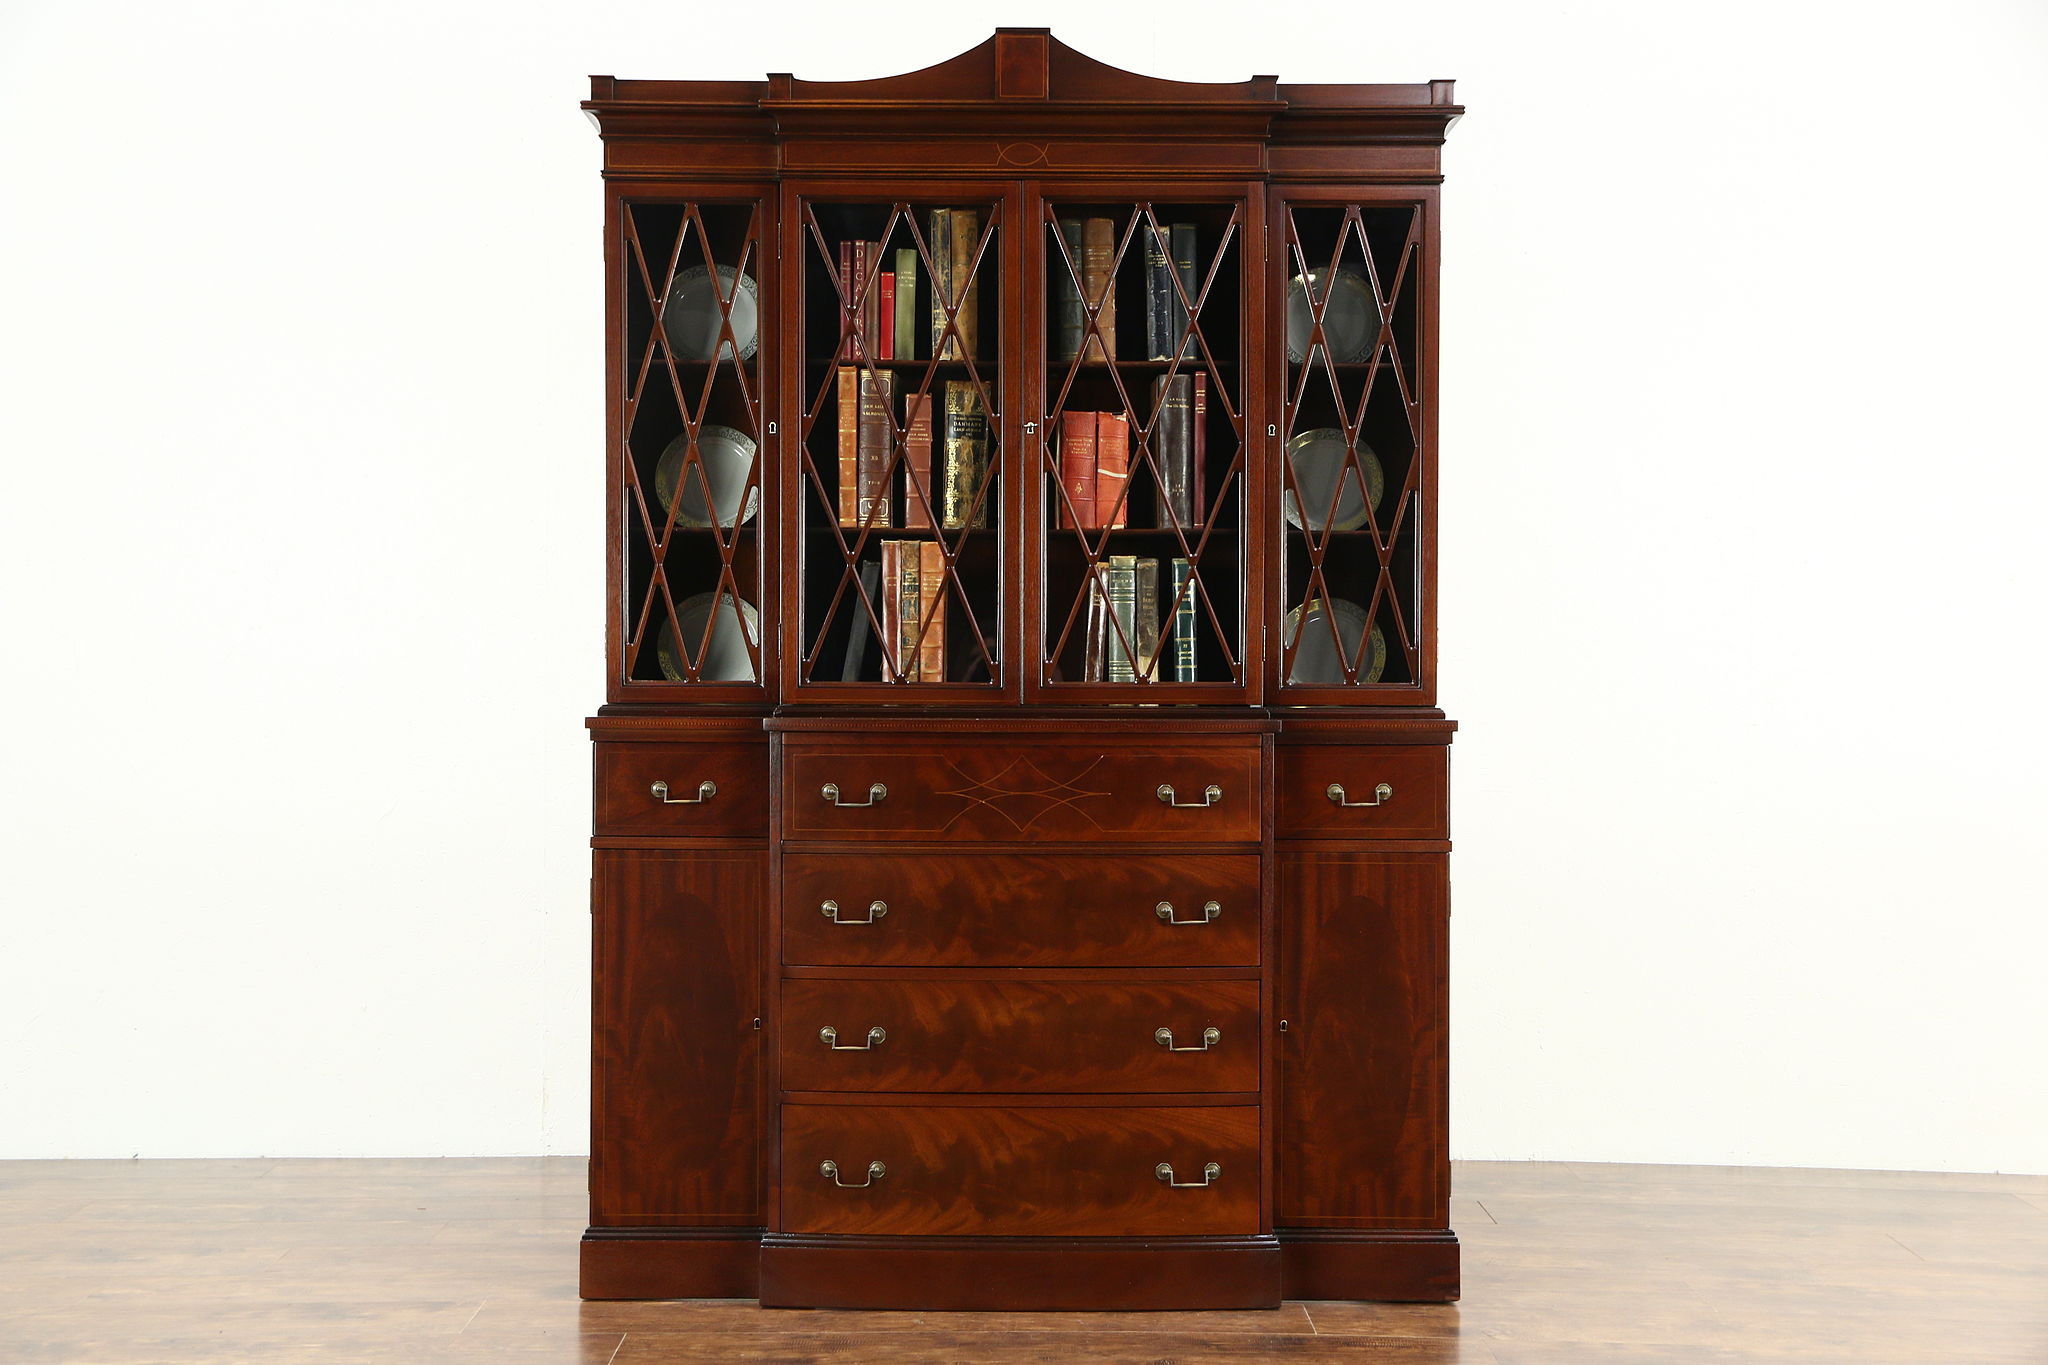 Charmant Maddox NY Signed 1950u0027s Vintage Breakfront China Cabinet Or Bookcase With  Desk